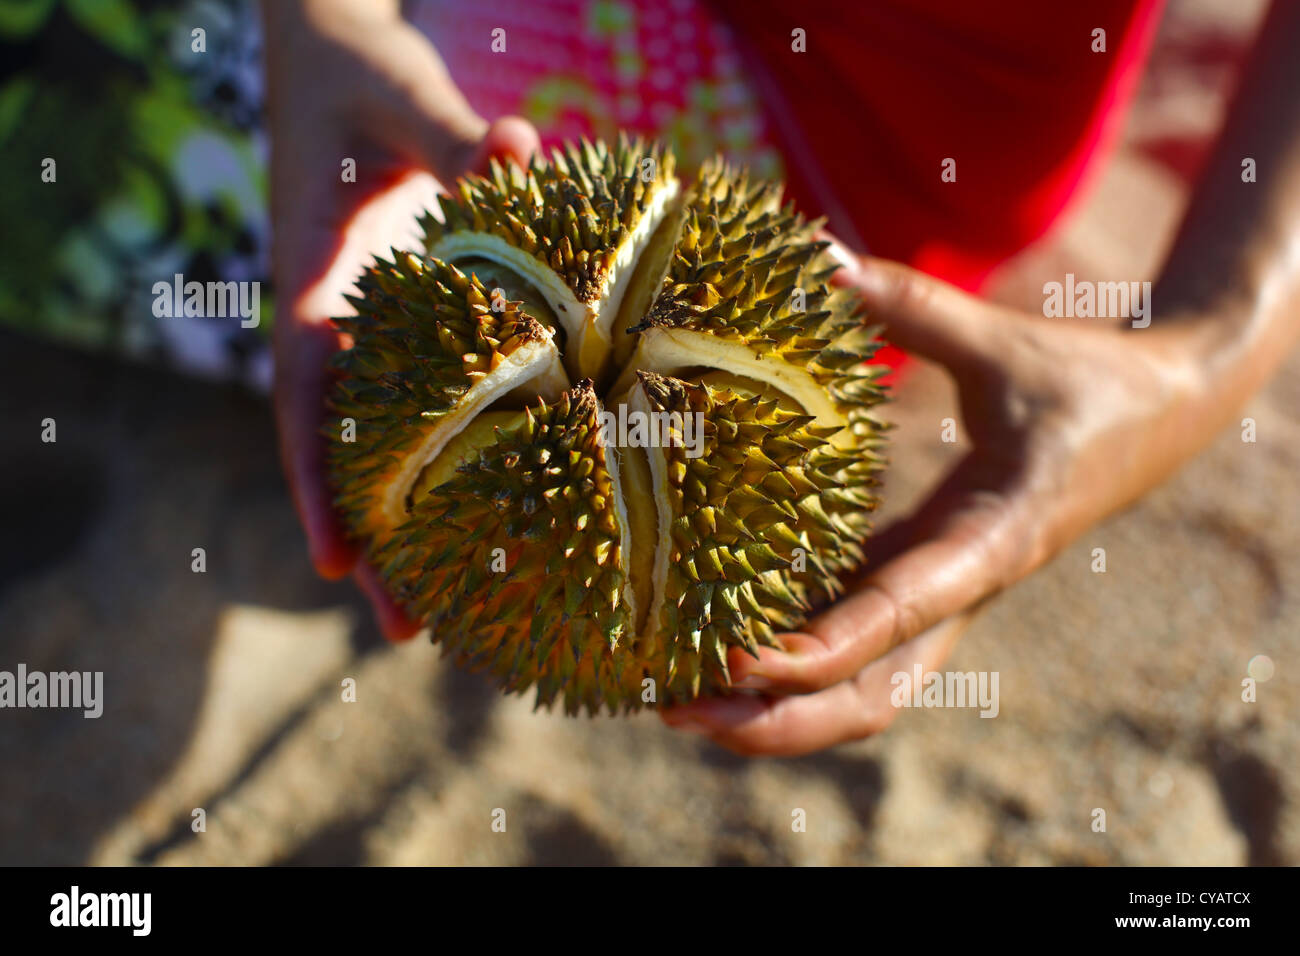 Durian nut fruit holding in hands, cracked open - Stock Image